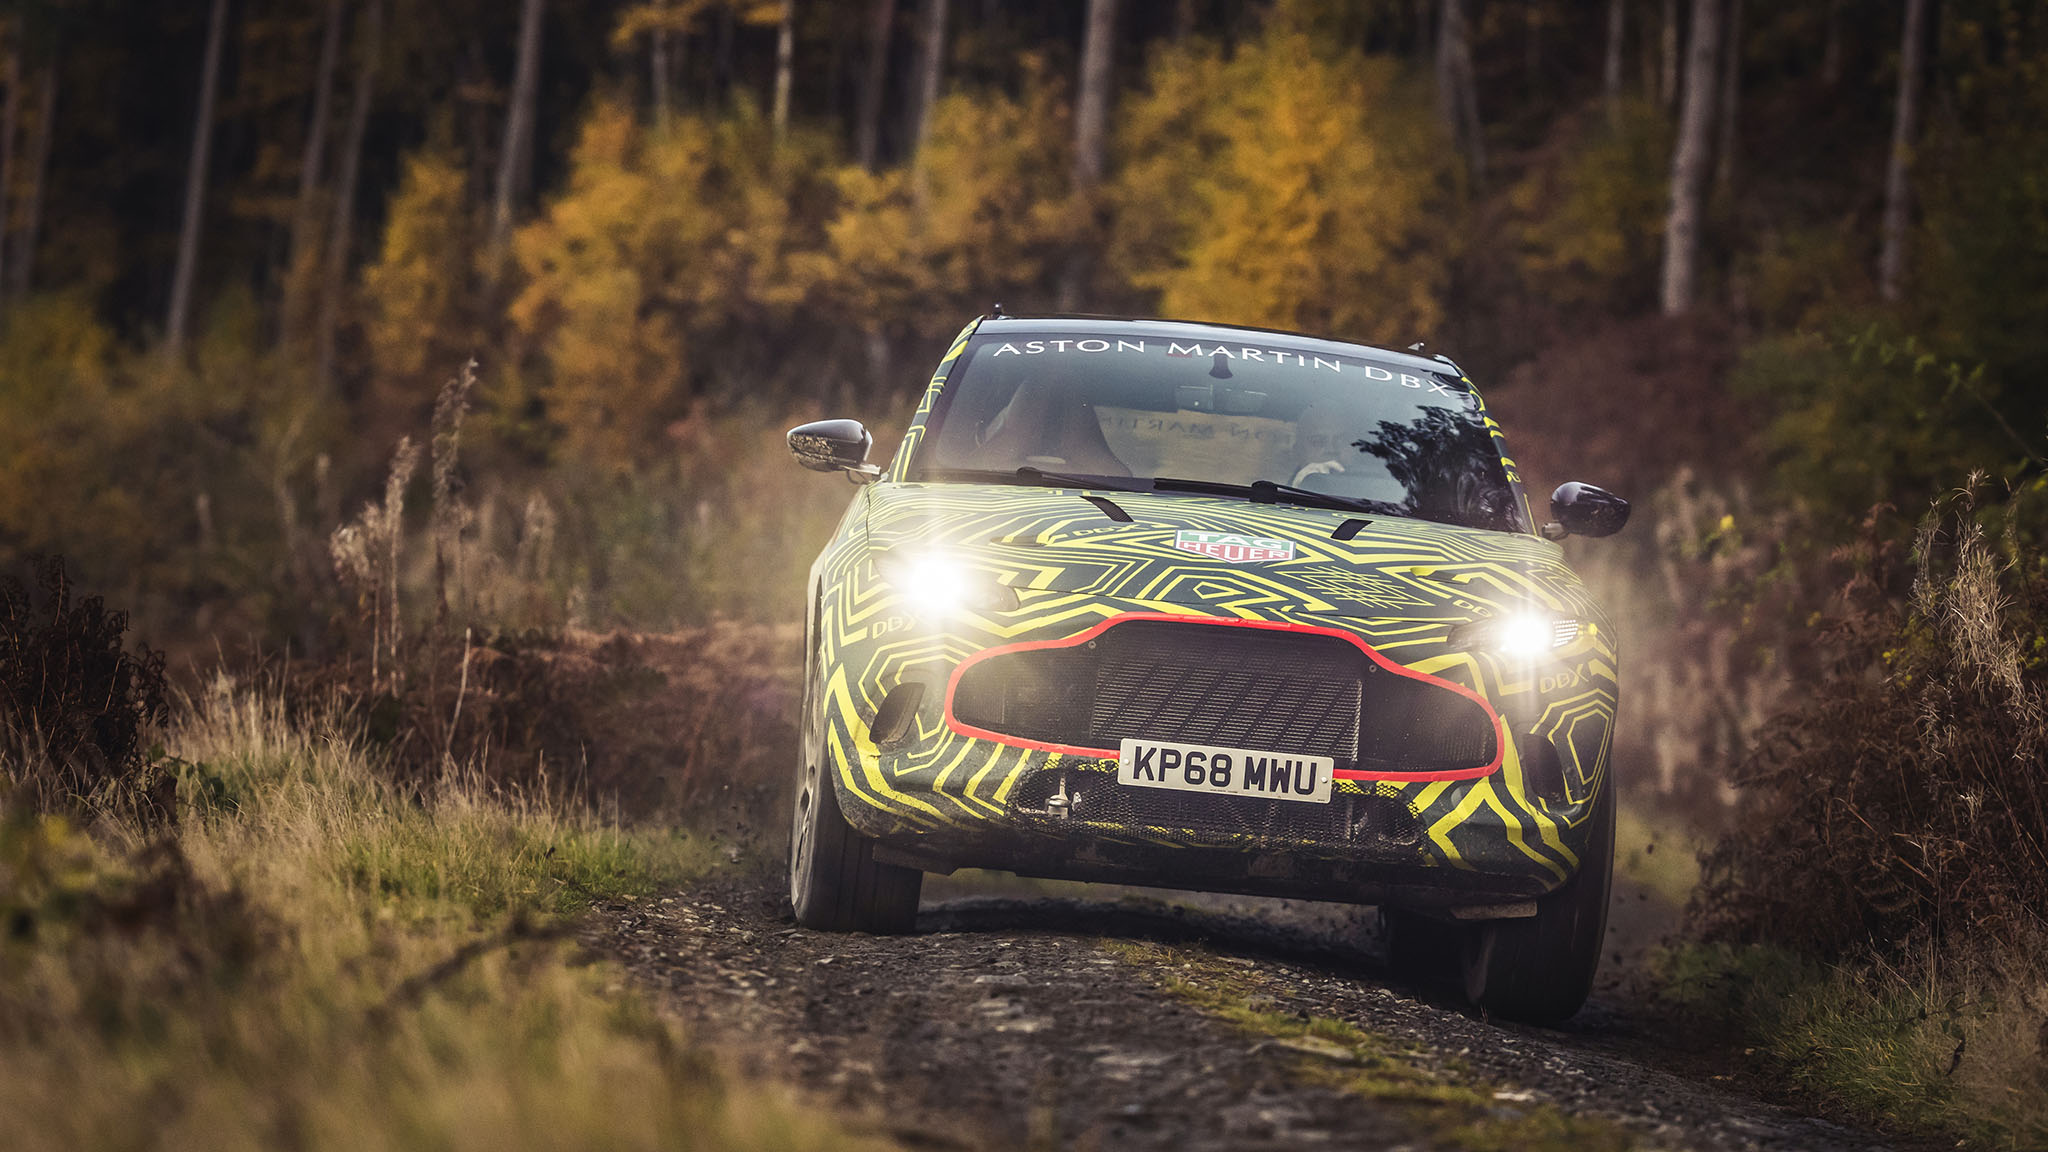 Aston Martin's First SUV Will Be Named DBX